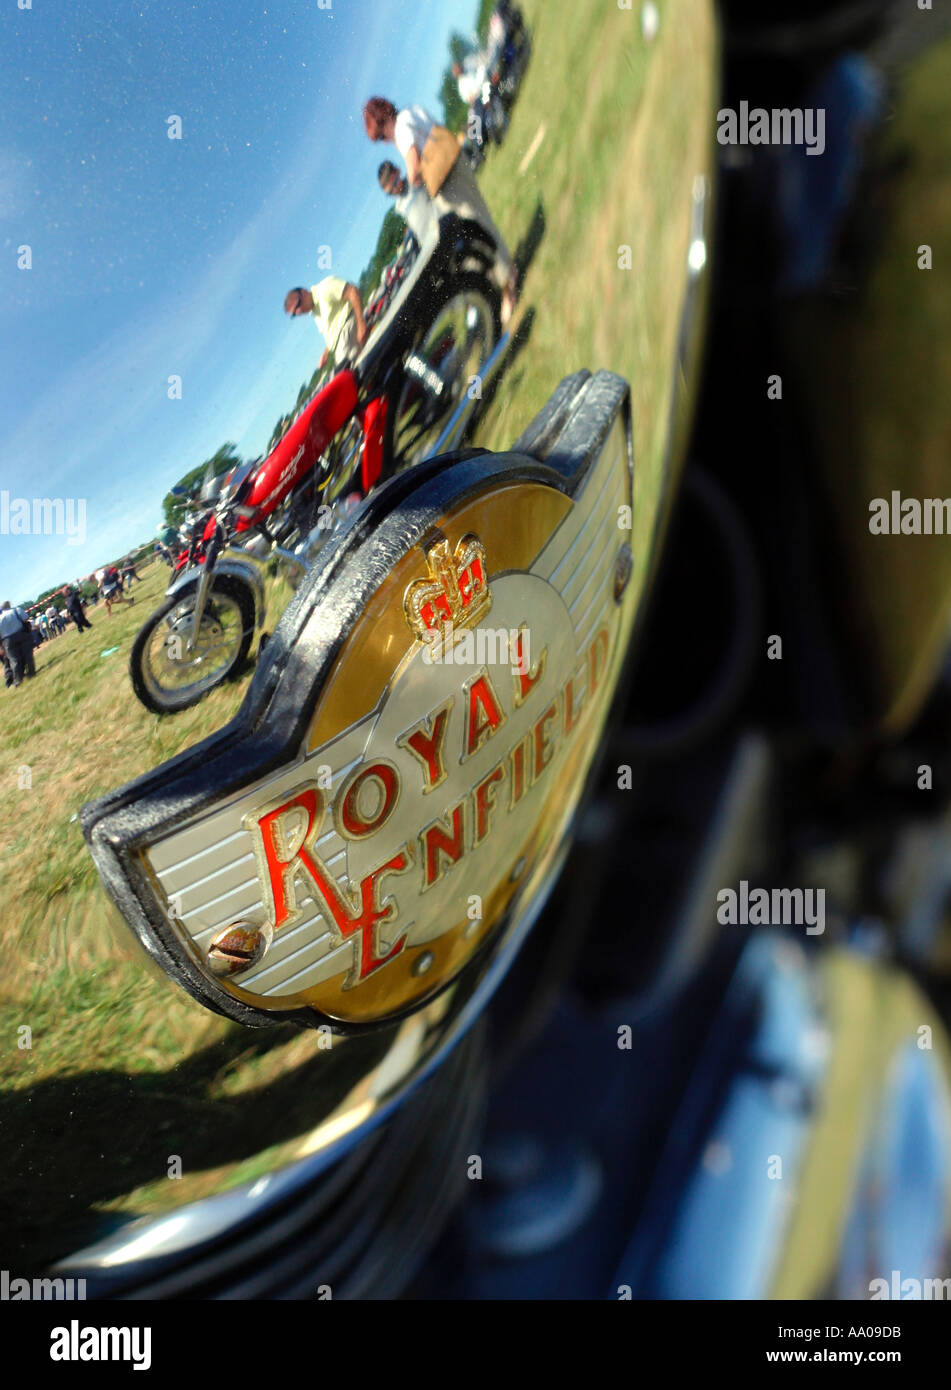 royal-enfield-badge-and-reflections-in-a